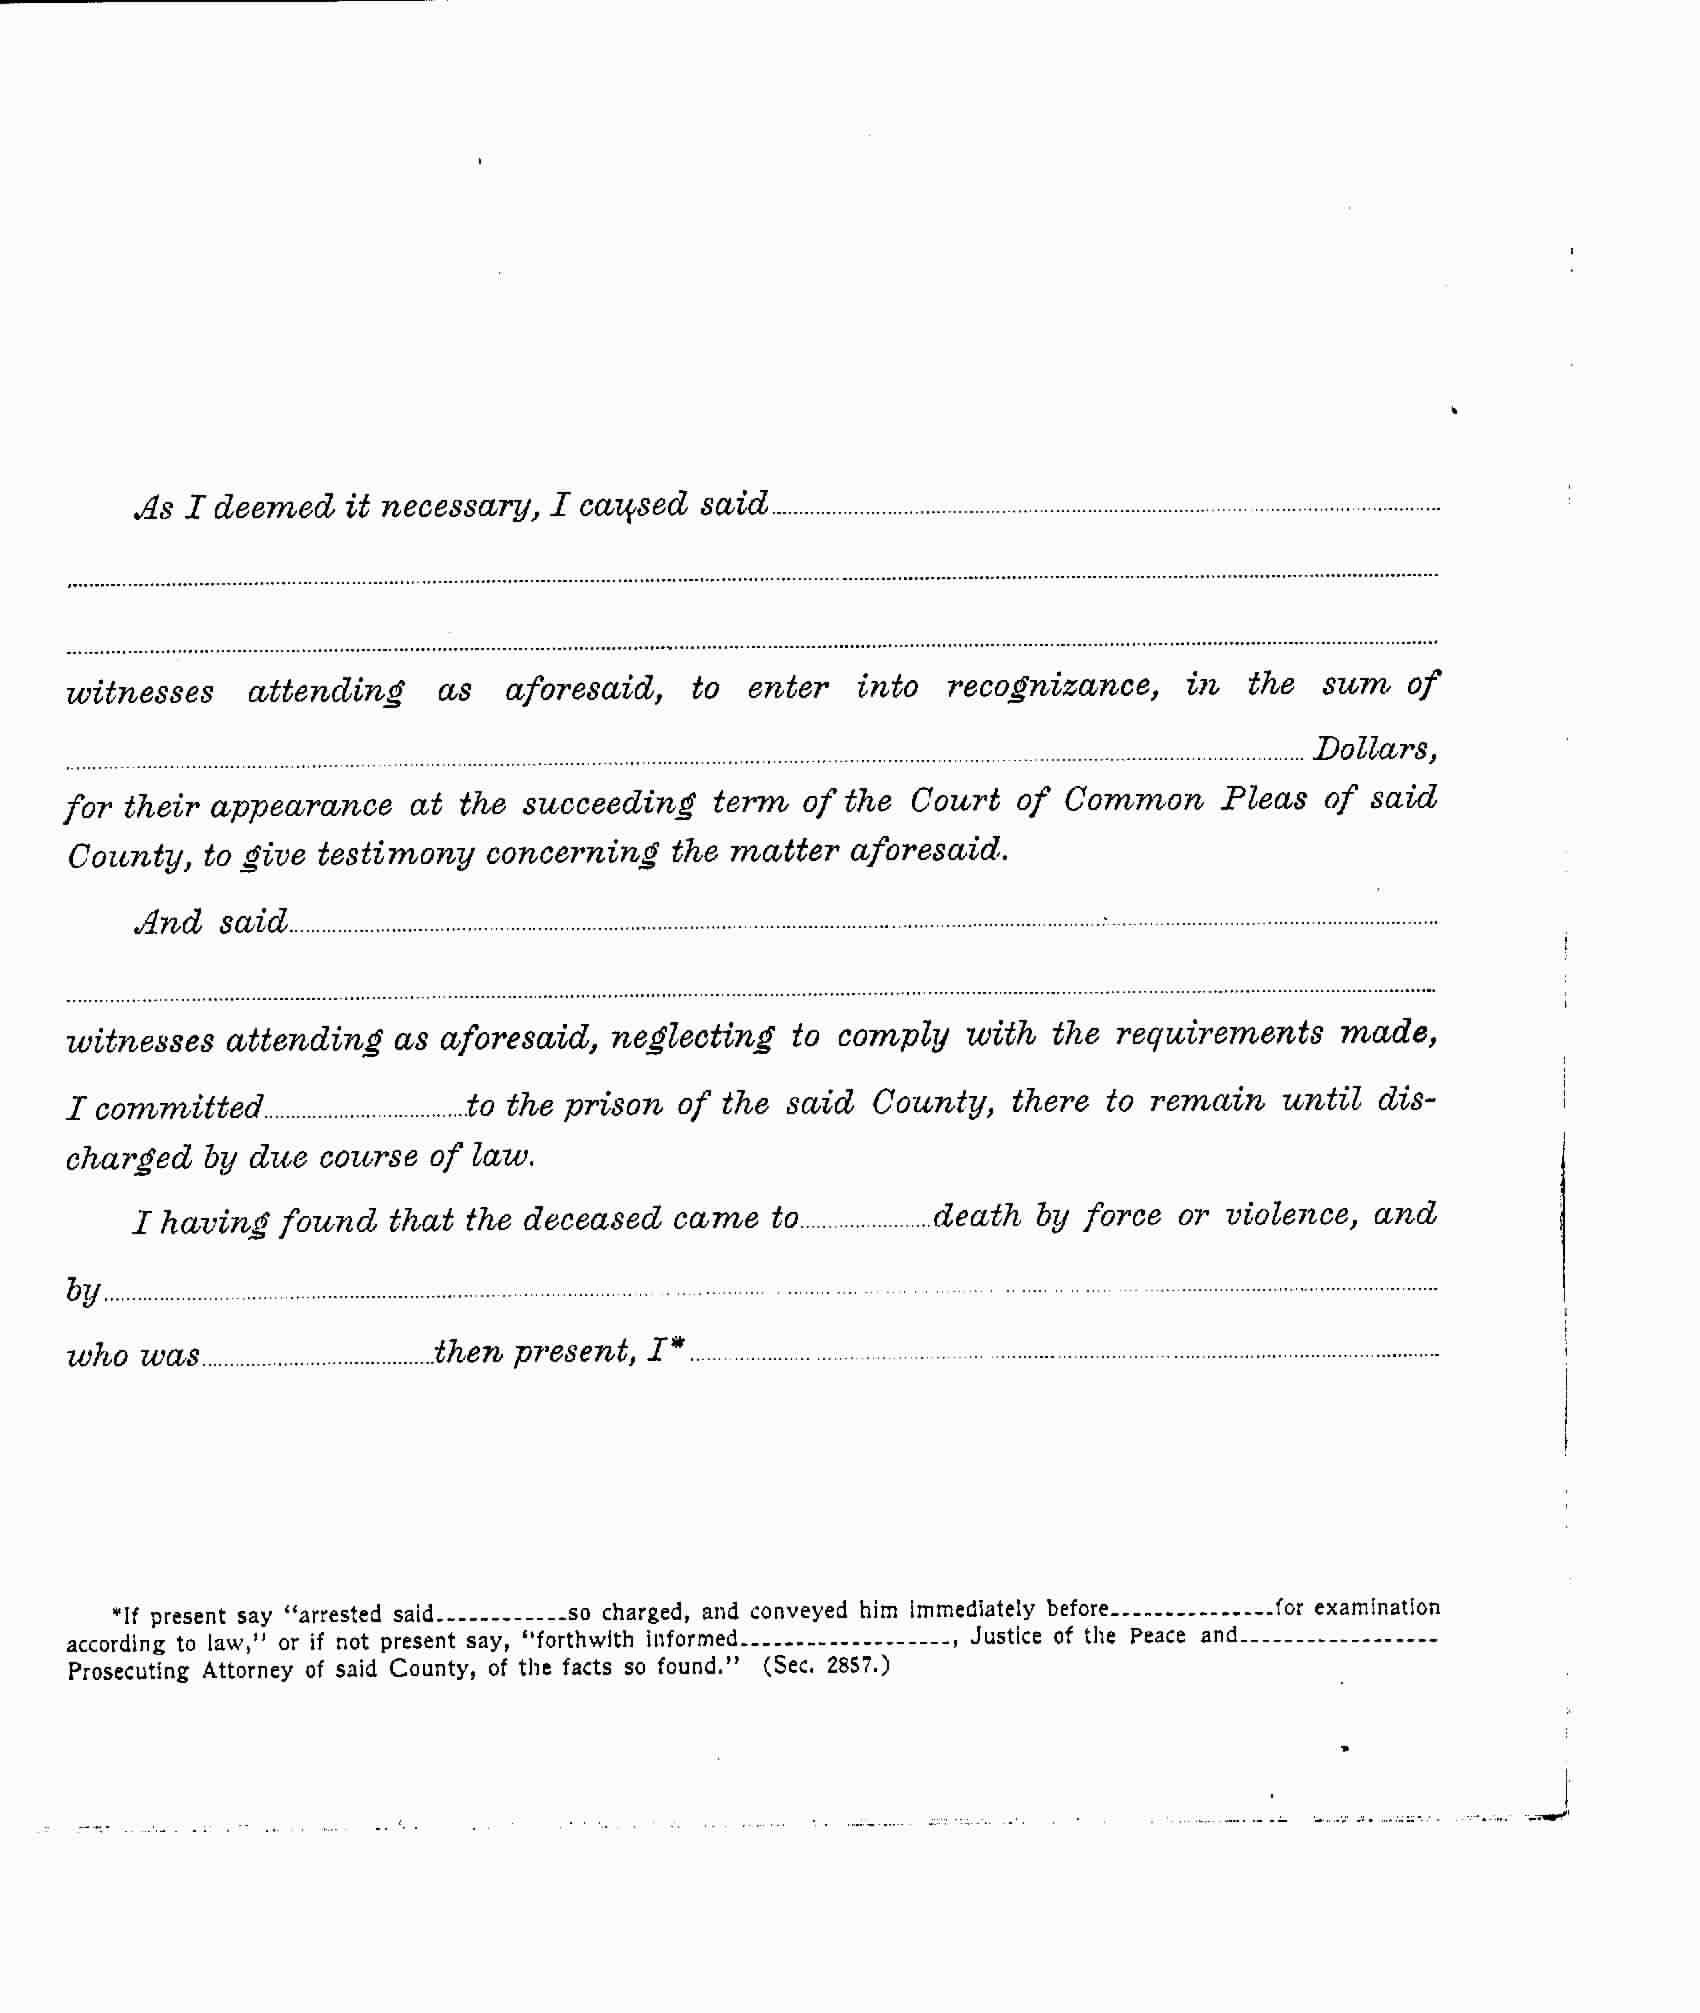 Page 3 of the Coroner's report